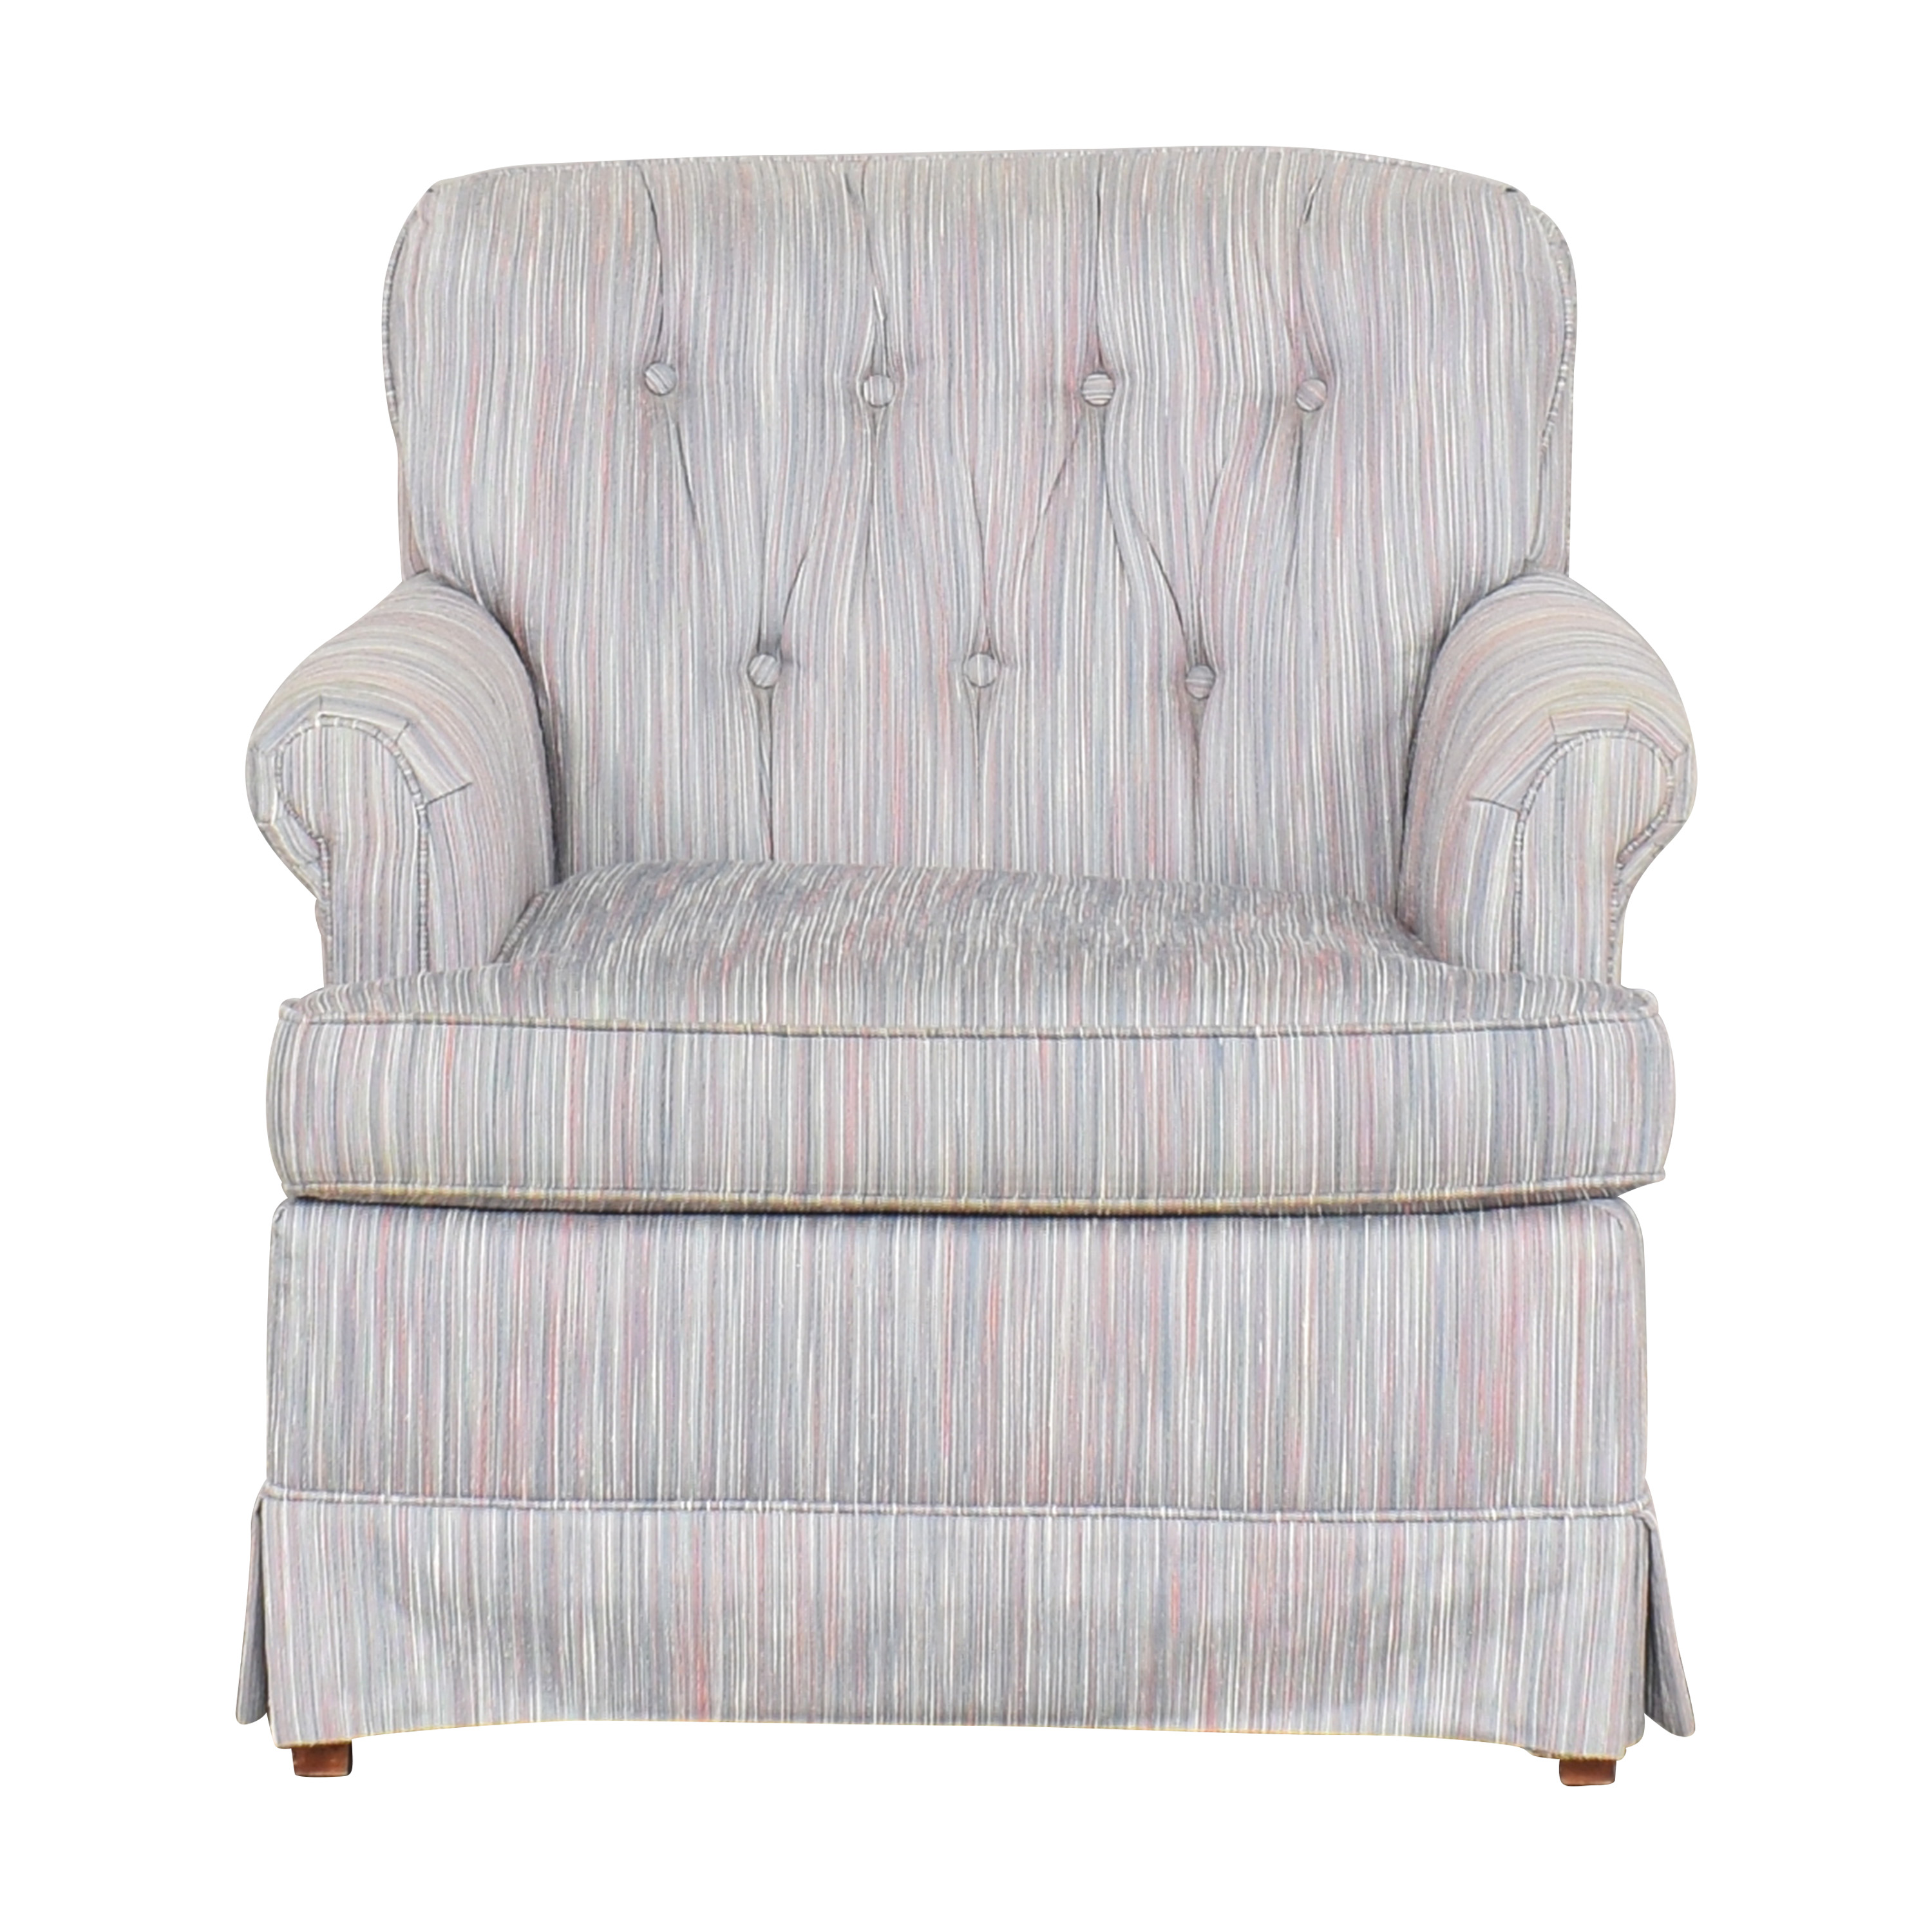 Hickory-Fry Hickory-Fry Tufted Accent Chair coupon